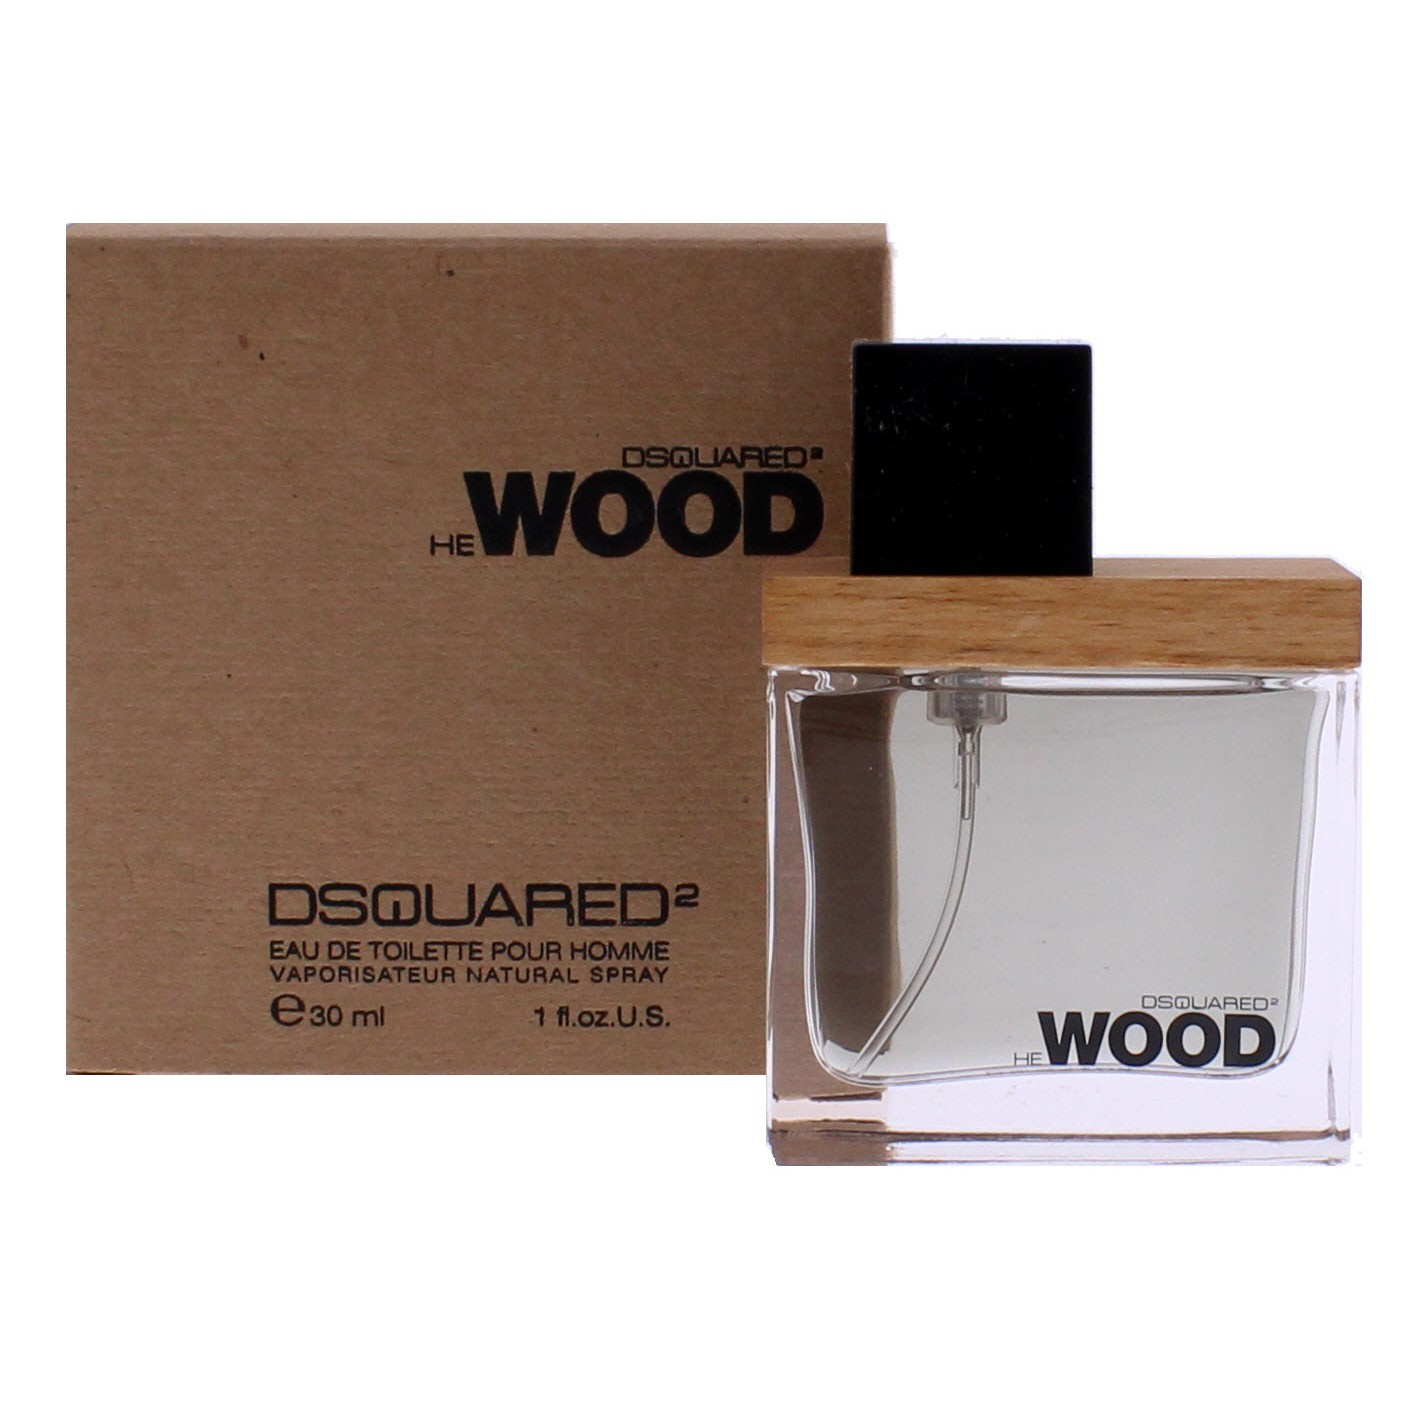 DSQUARED He Wood EDT 30ml